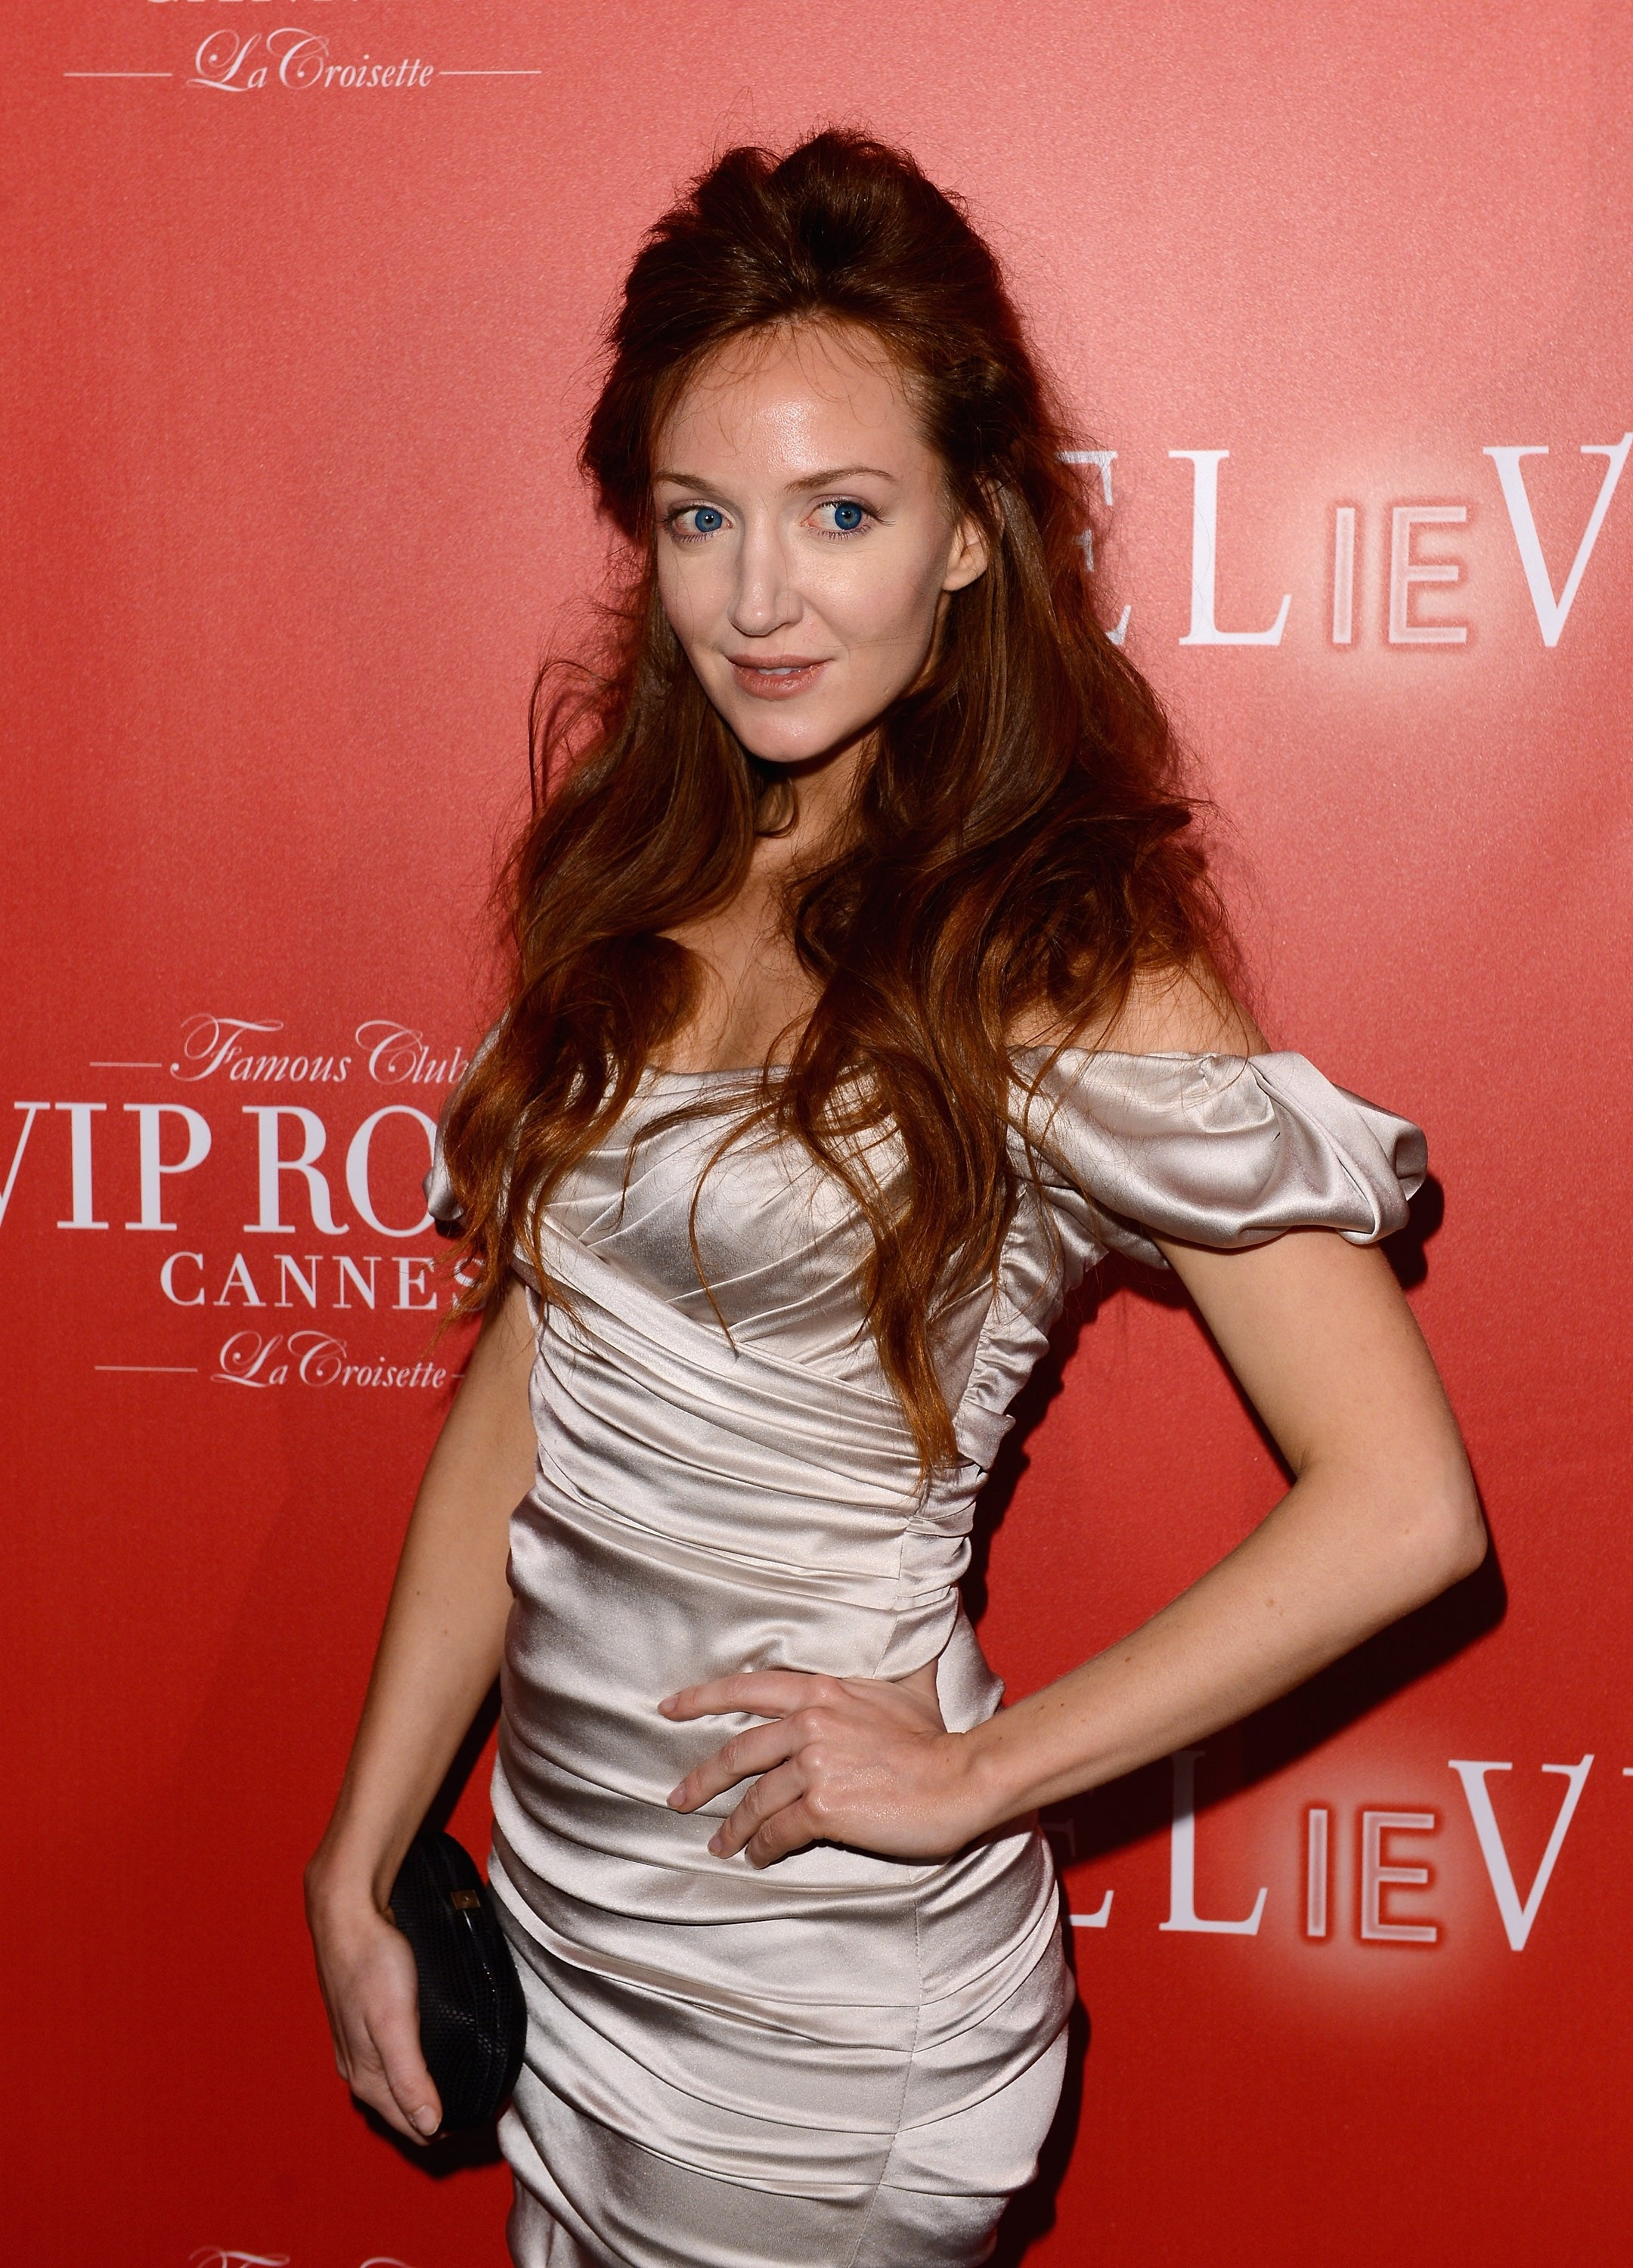 Olivia Grant at The BELVEDERE RED Party, May 18, 2012 in Cannes, France